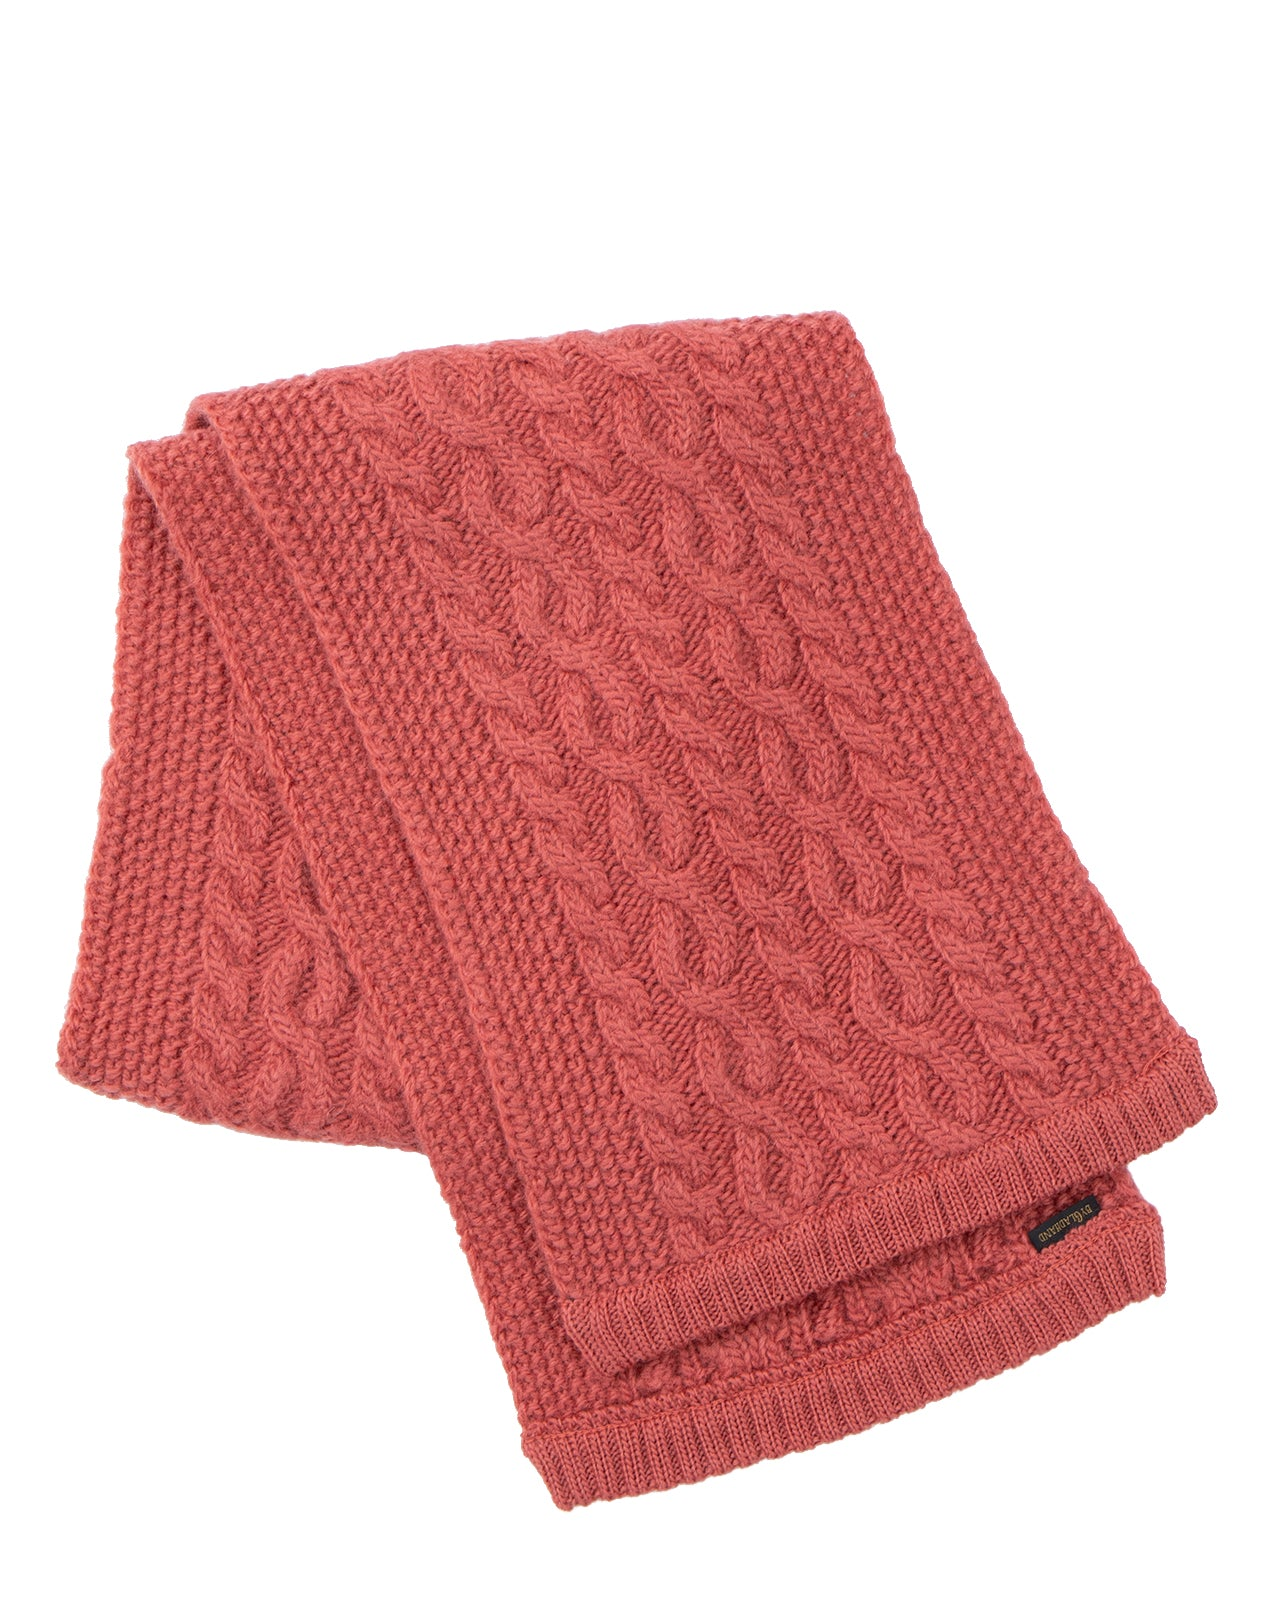 By Glad Hand Island Knit Scarf, Pink